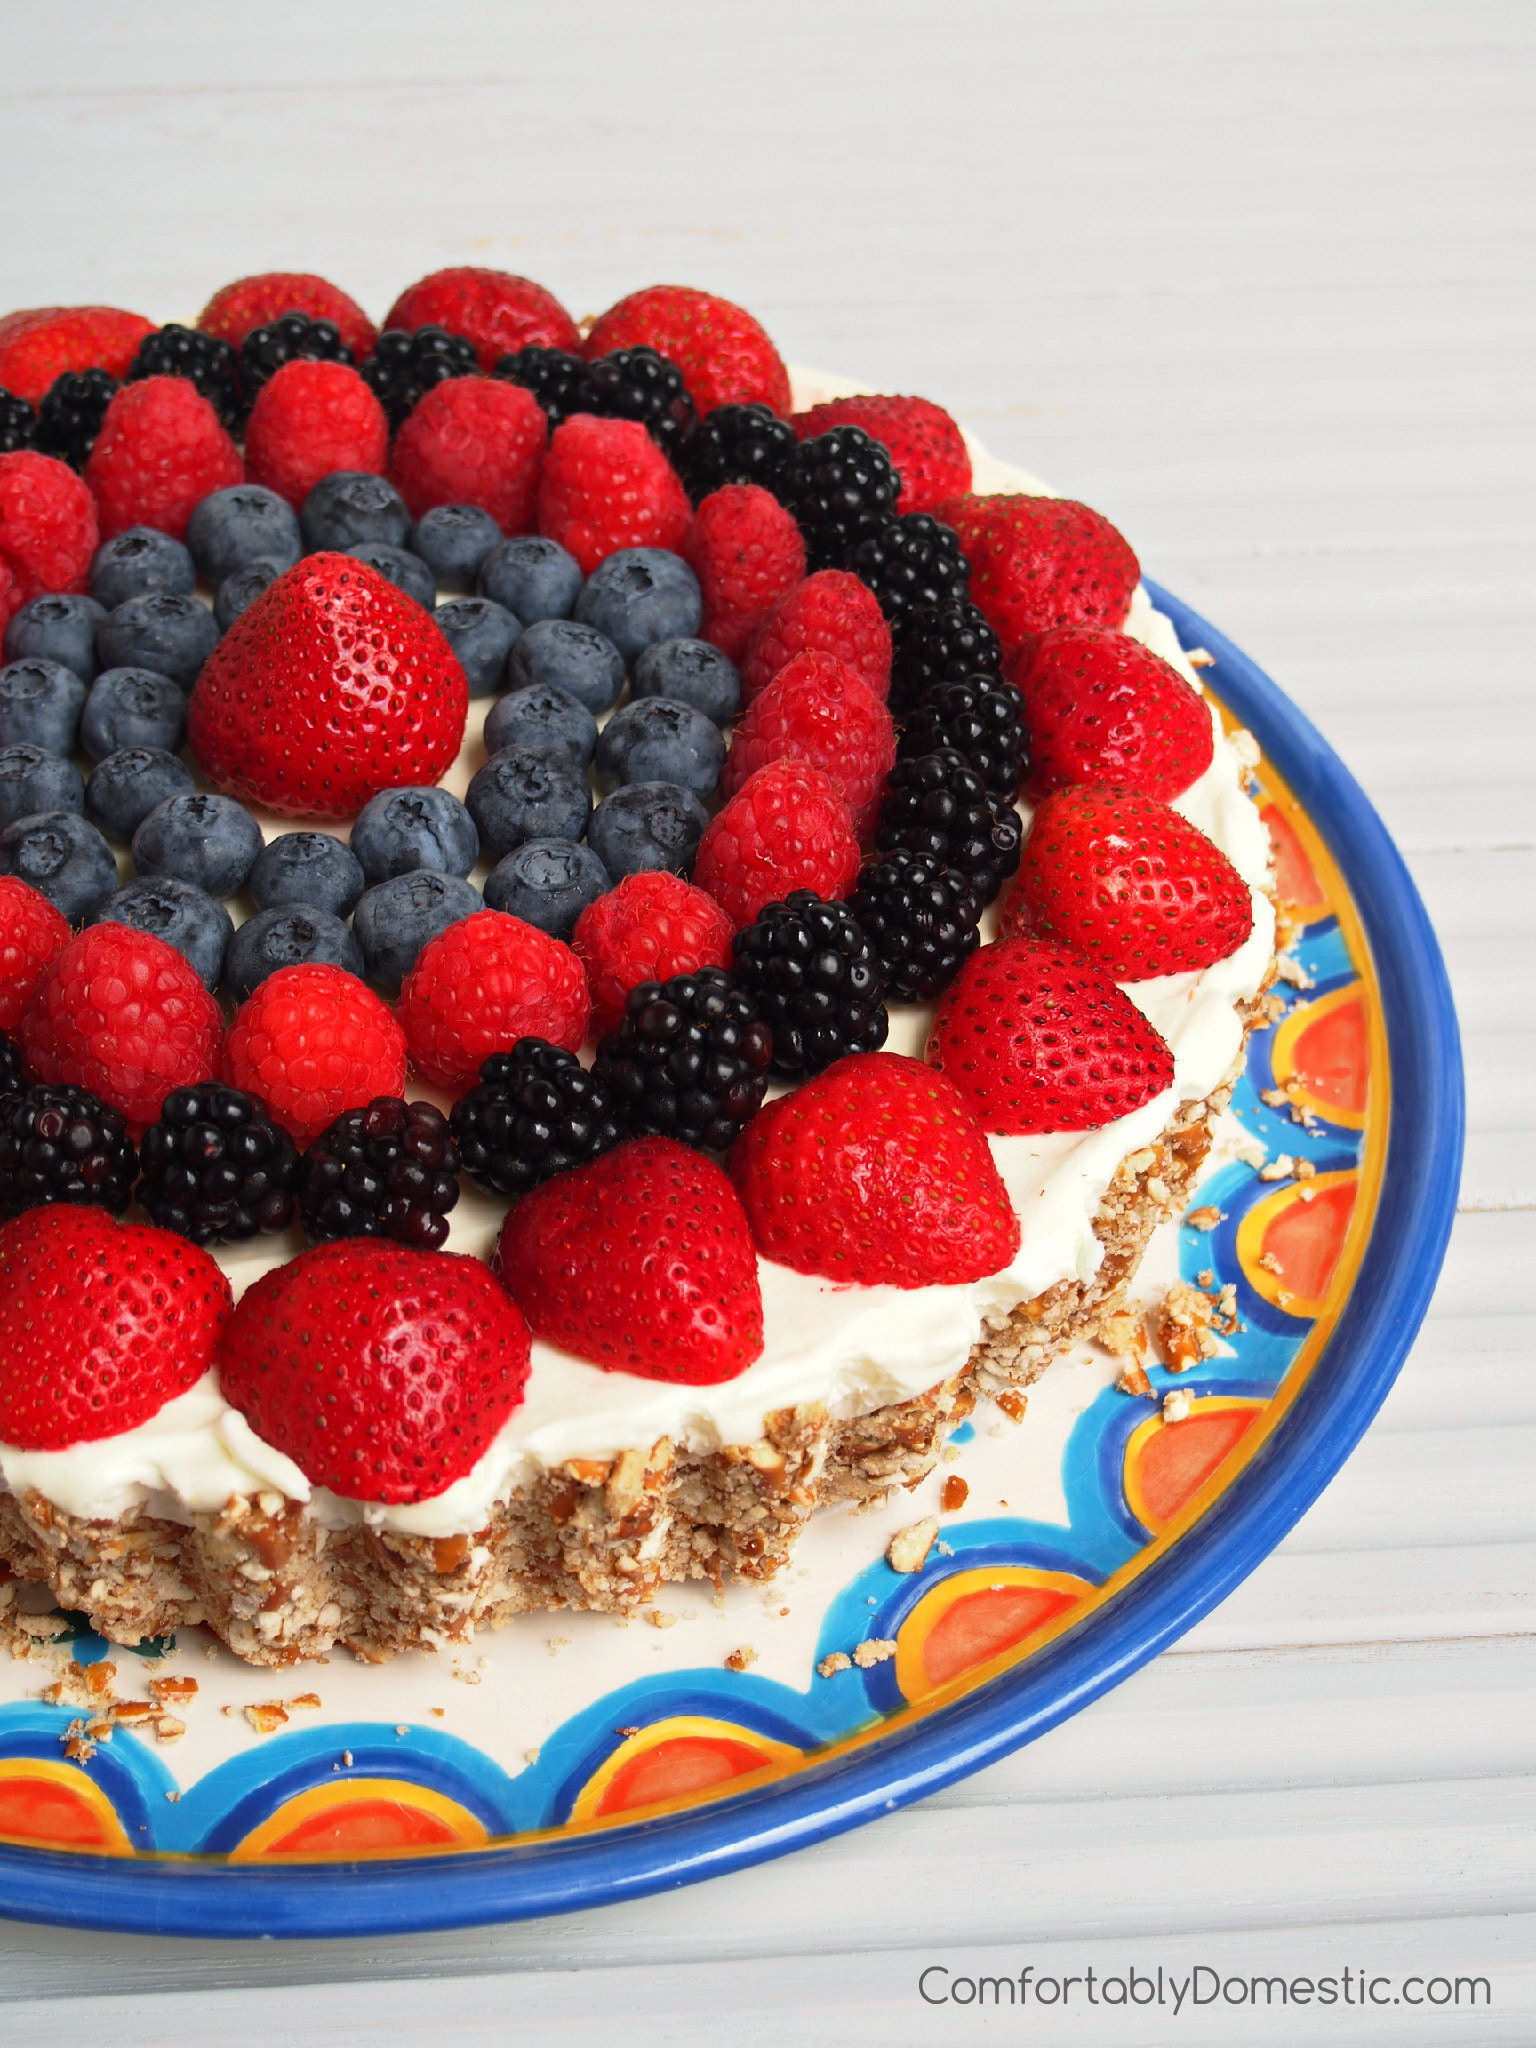 Lemon Mousse Tart with Pretzel Crust and Berries | ComfortablyDomestic.com